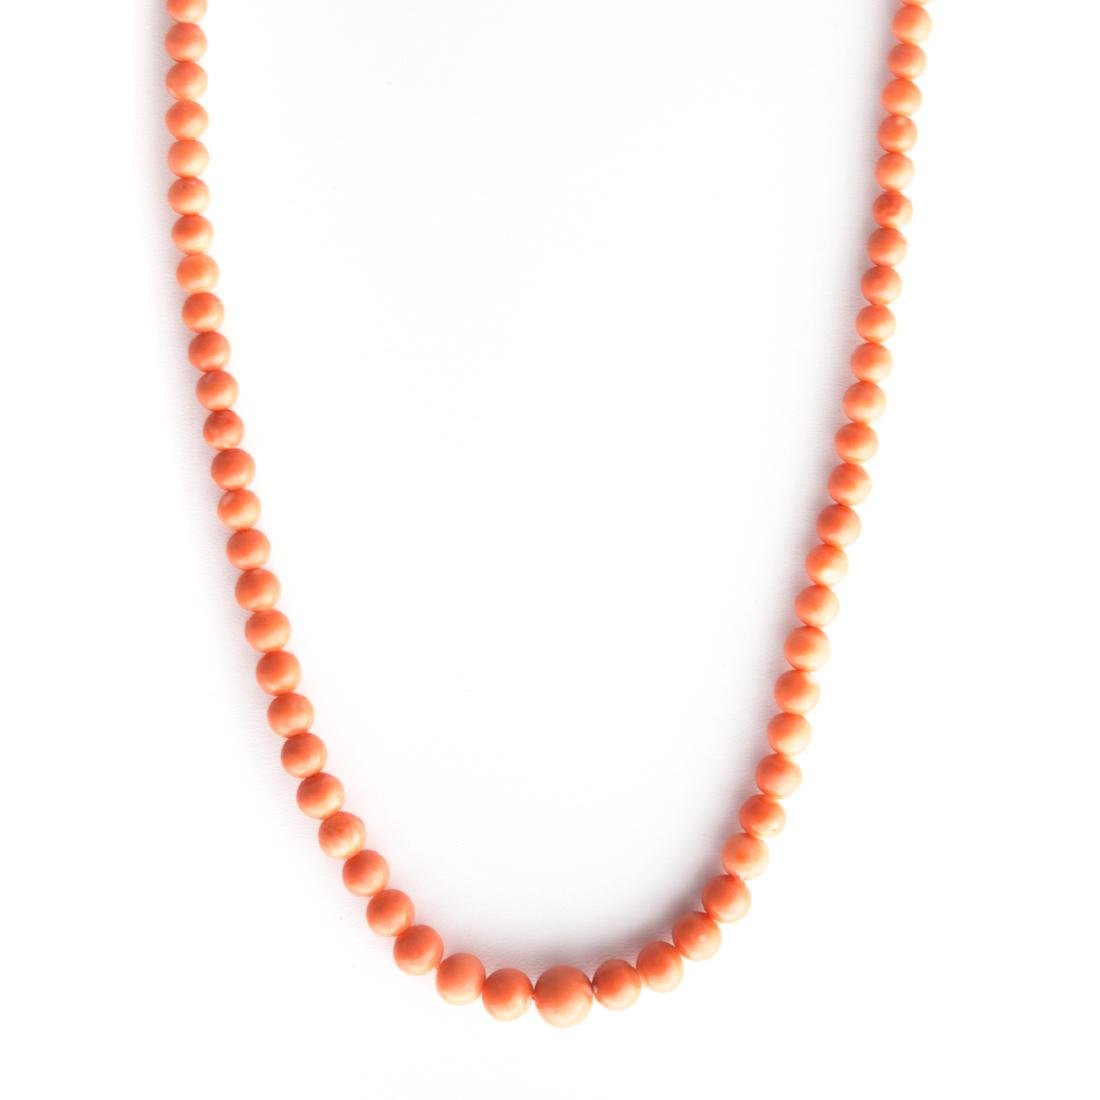 A Strand of Coral Beads and Coral Ring in Gold - 4